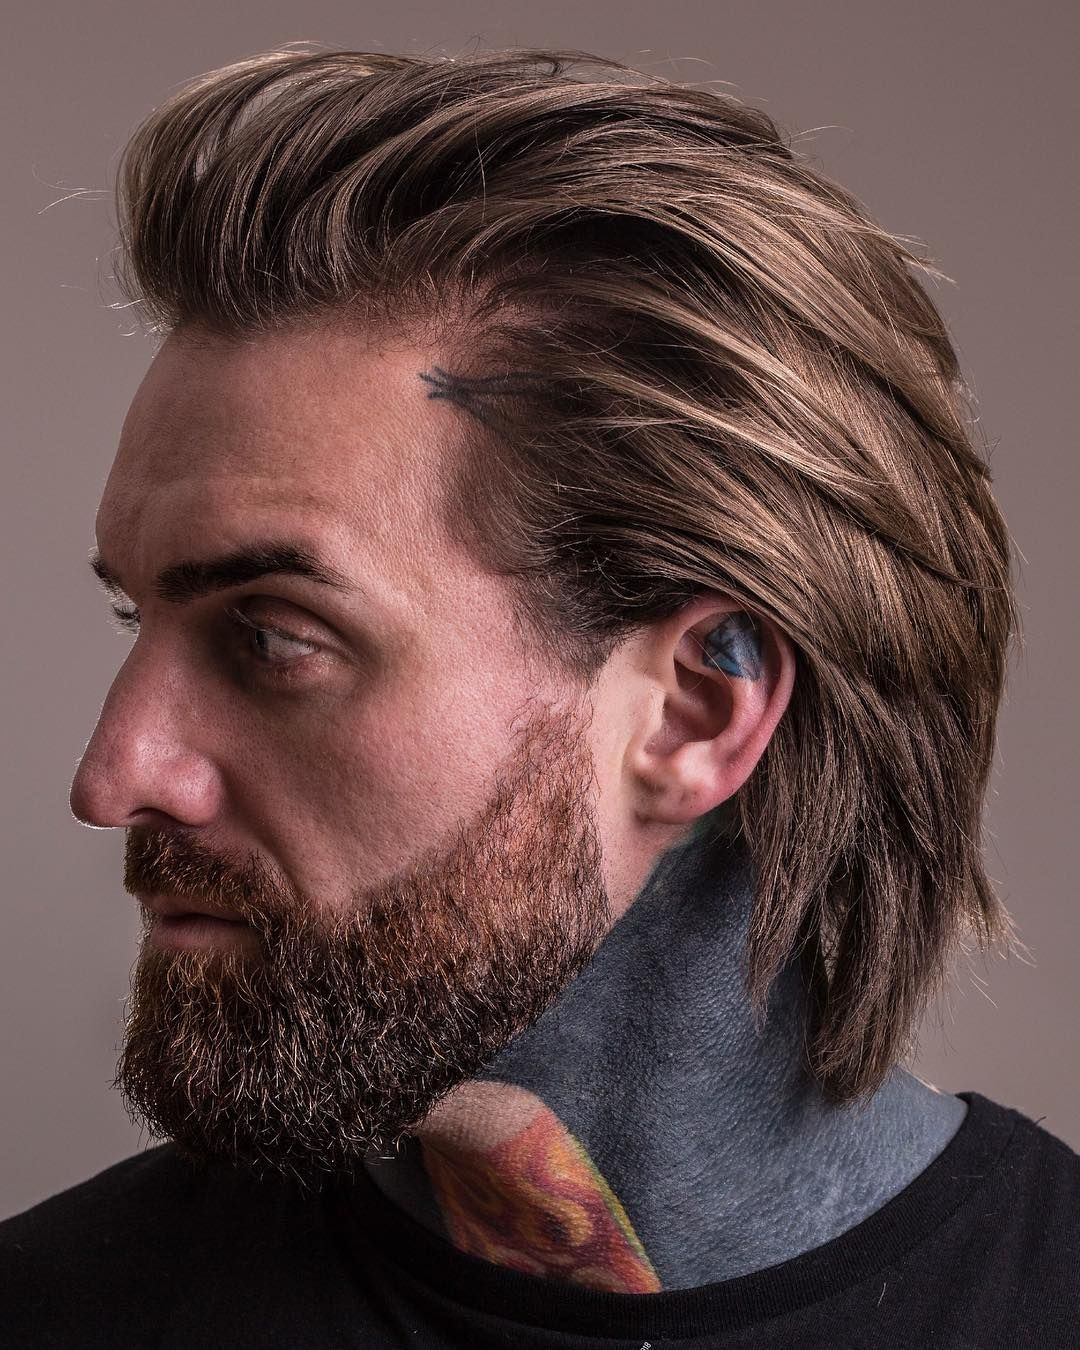 15 Hipster Hairstyles For Men How To Get Guides Hair Styles Hipster Hairstyles Slicked Back Hair